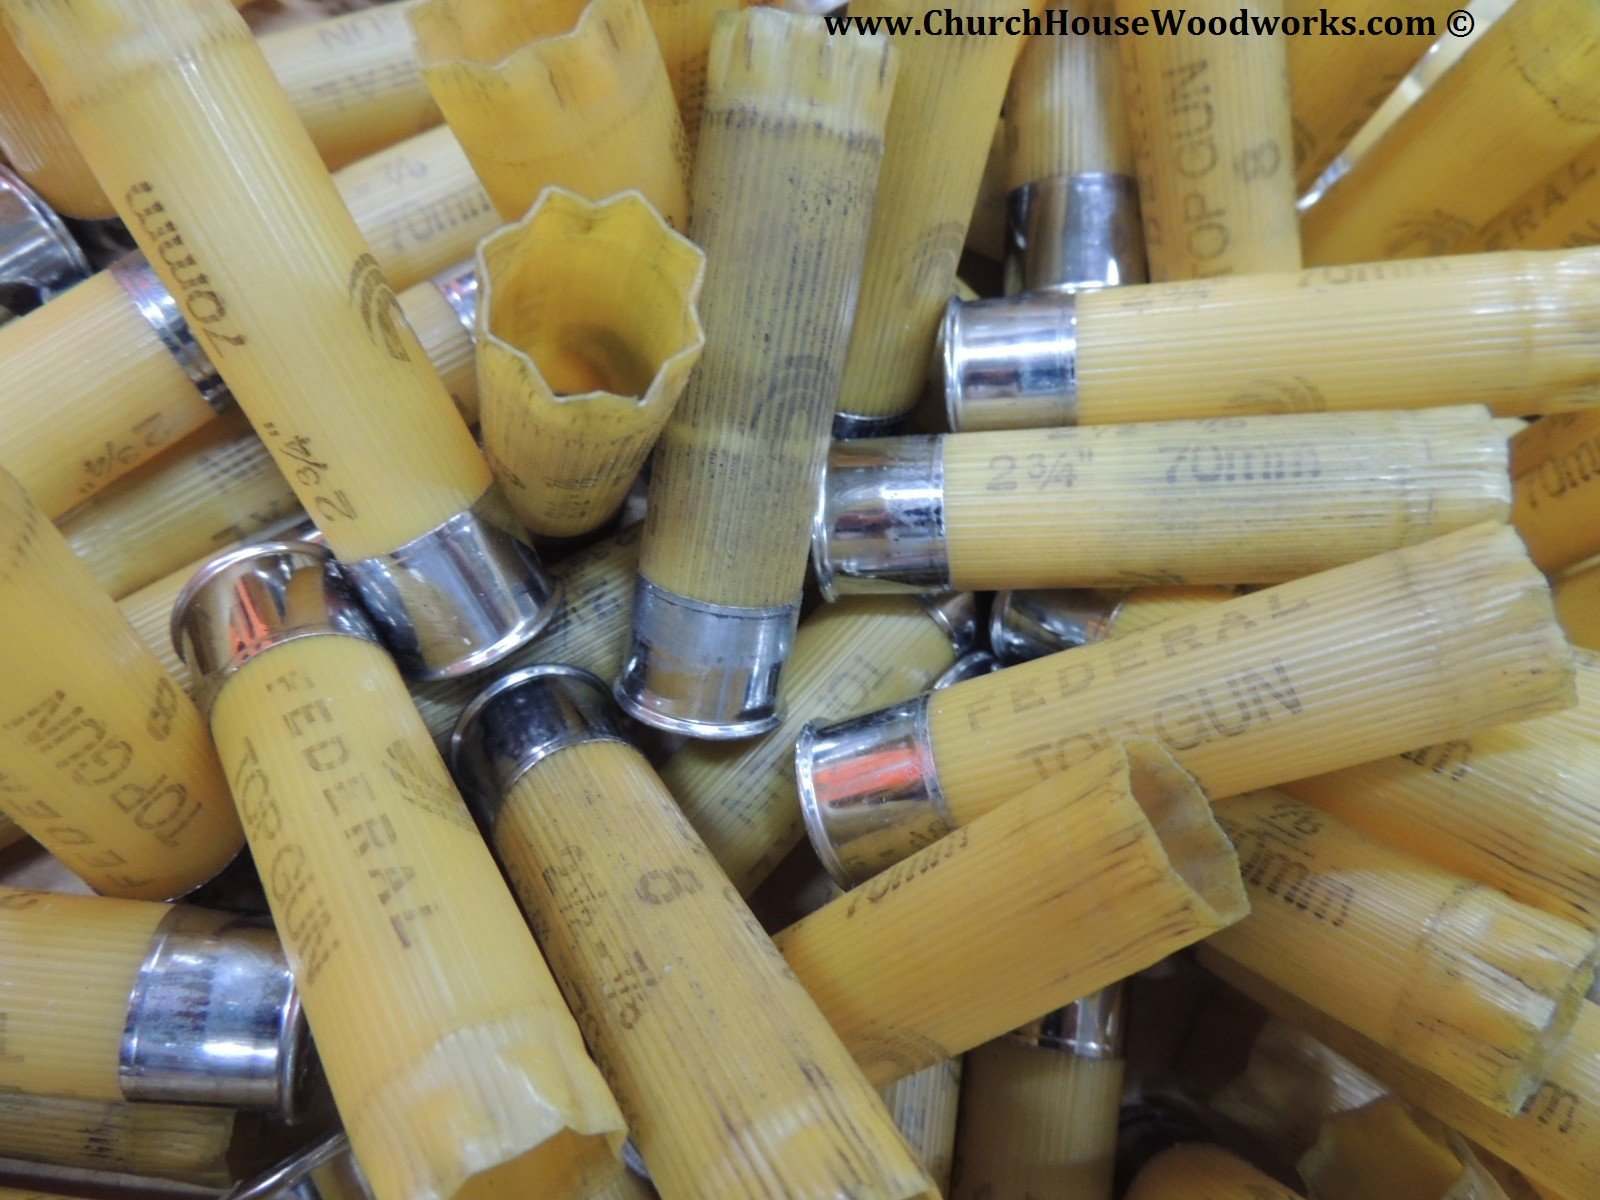 Shotgun shells photo